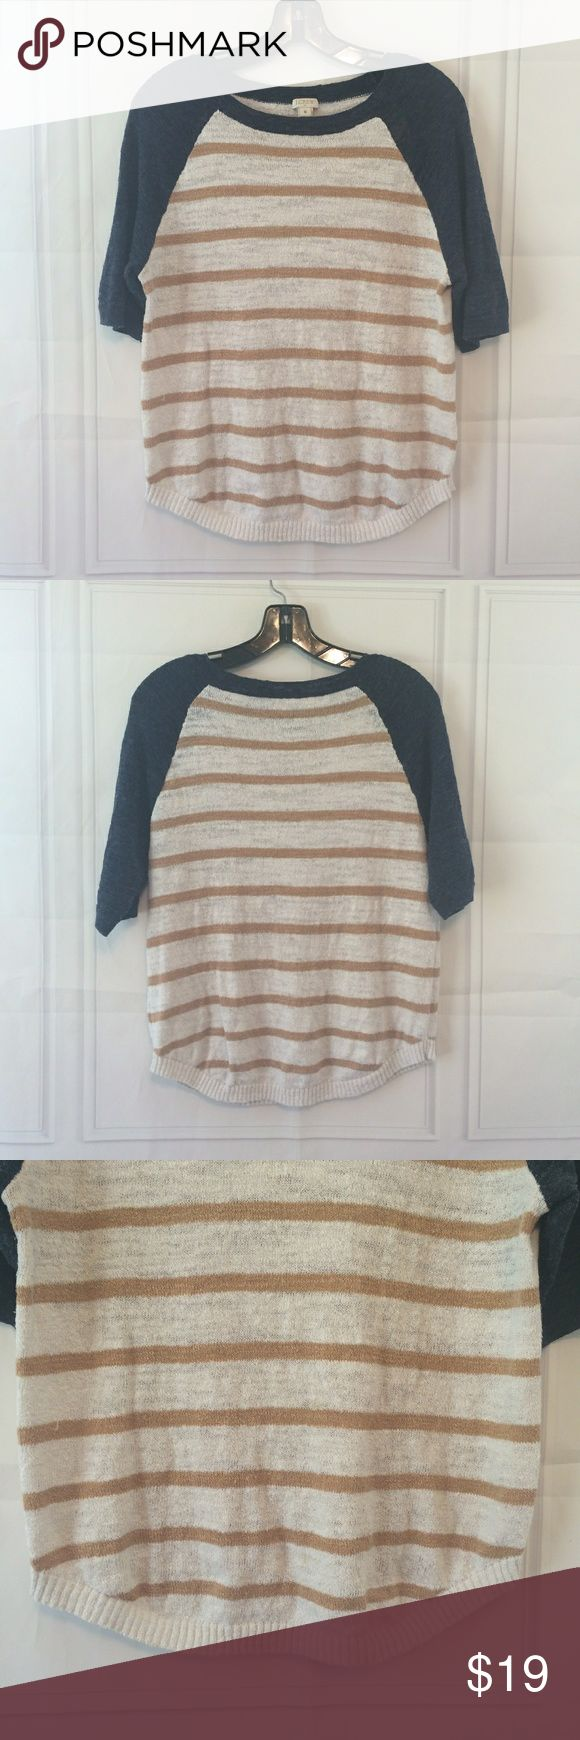 J. Crew Factory Medium Tan / White / Blue Sweater J. Crew Factory Airspun Baseball Sweater in Stripe. Medium. Tan and white stripes with navy blue accent on sleeves and around neck. Linen blend. Thin. Pullover. Some pilling and a light spot on front bottom. See pictures. Still in great condition! This garment has been washed. See photos for measurements,  fabric content and cleaning instructions. Thank you for looking at my store! - Bin 4-4 J. Crew Factory Sweaters Crew & Scoop Necks